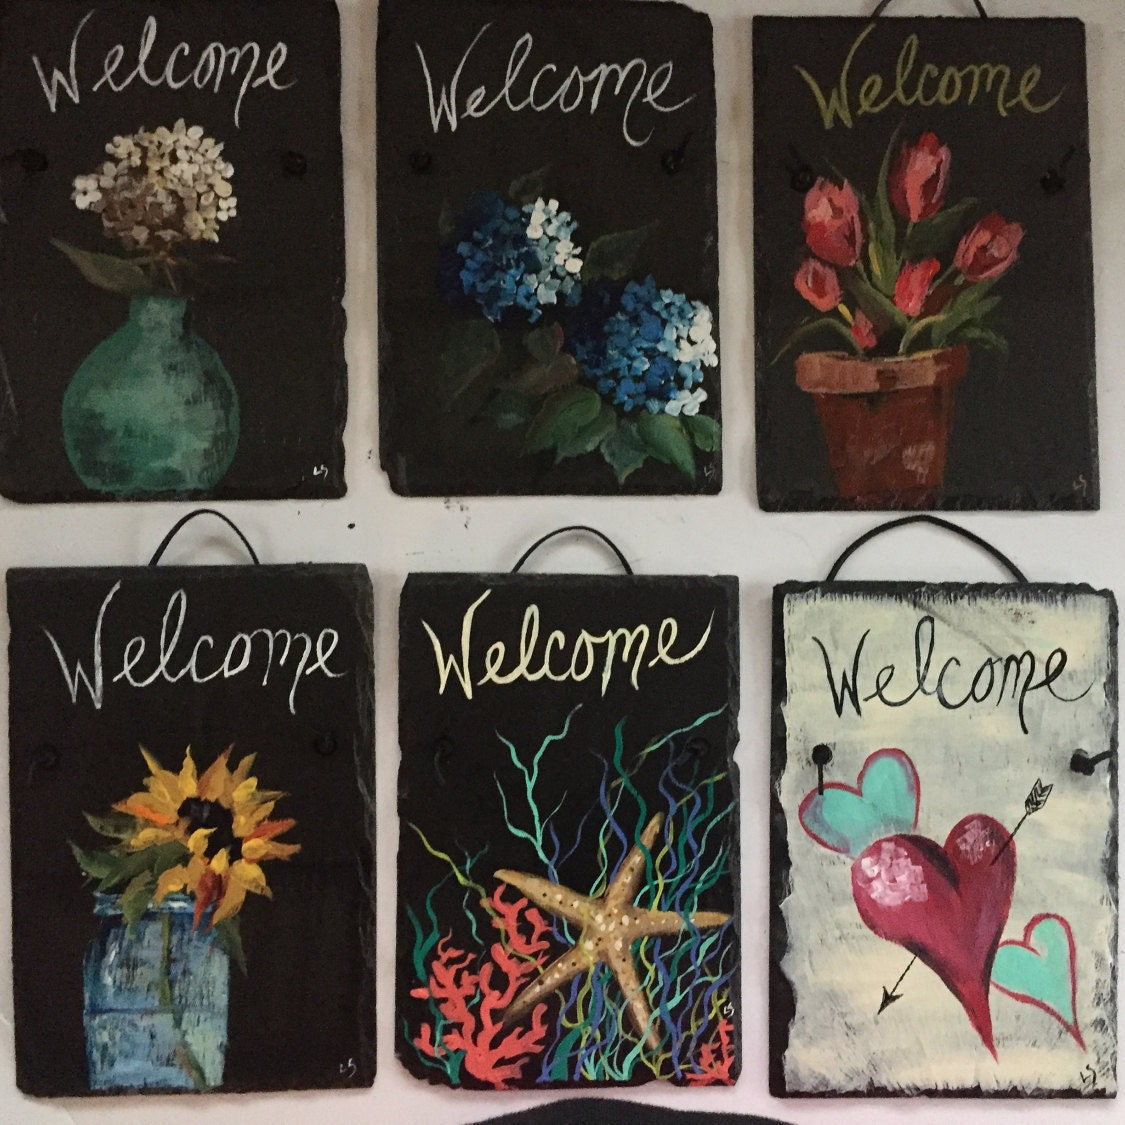 Personalized slate welcome signs 12 x 8 painted slate door personalized slate welcome signs 12 x 8 painted slate door hanging welcome sign front door decorations door sign beach house decor rubansaba